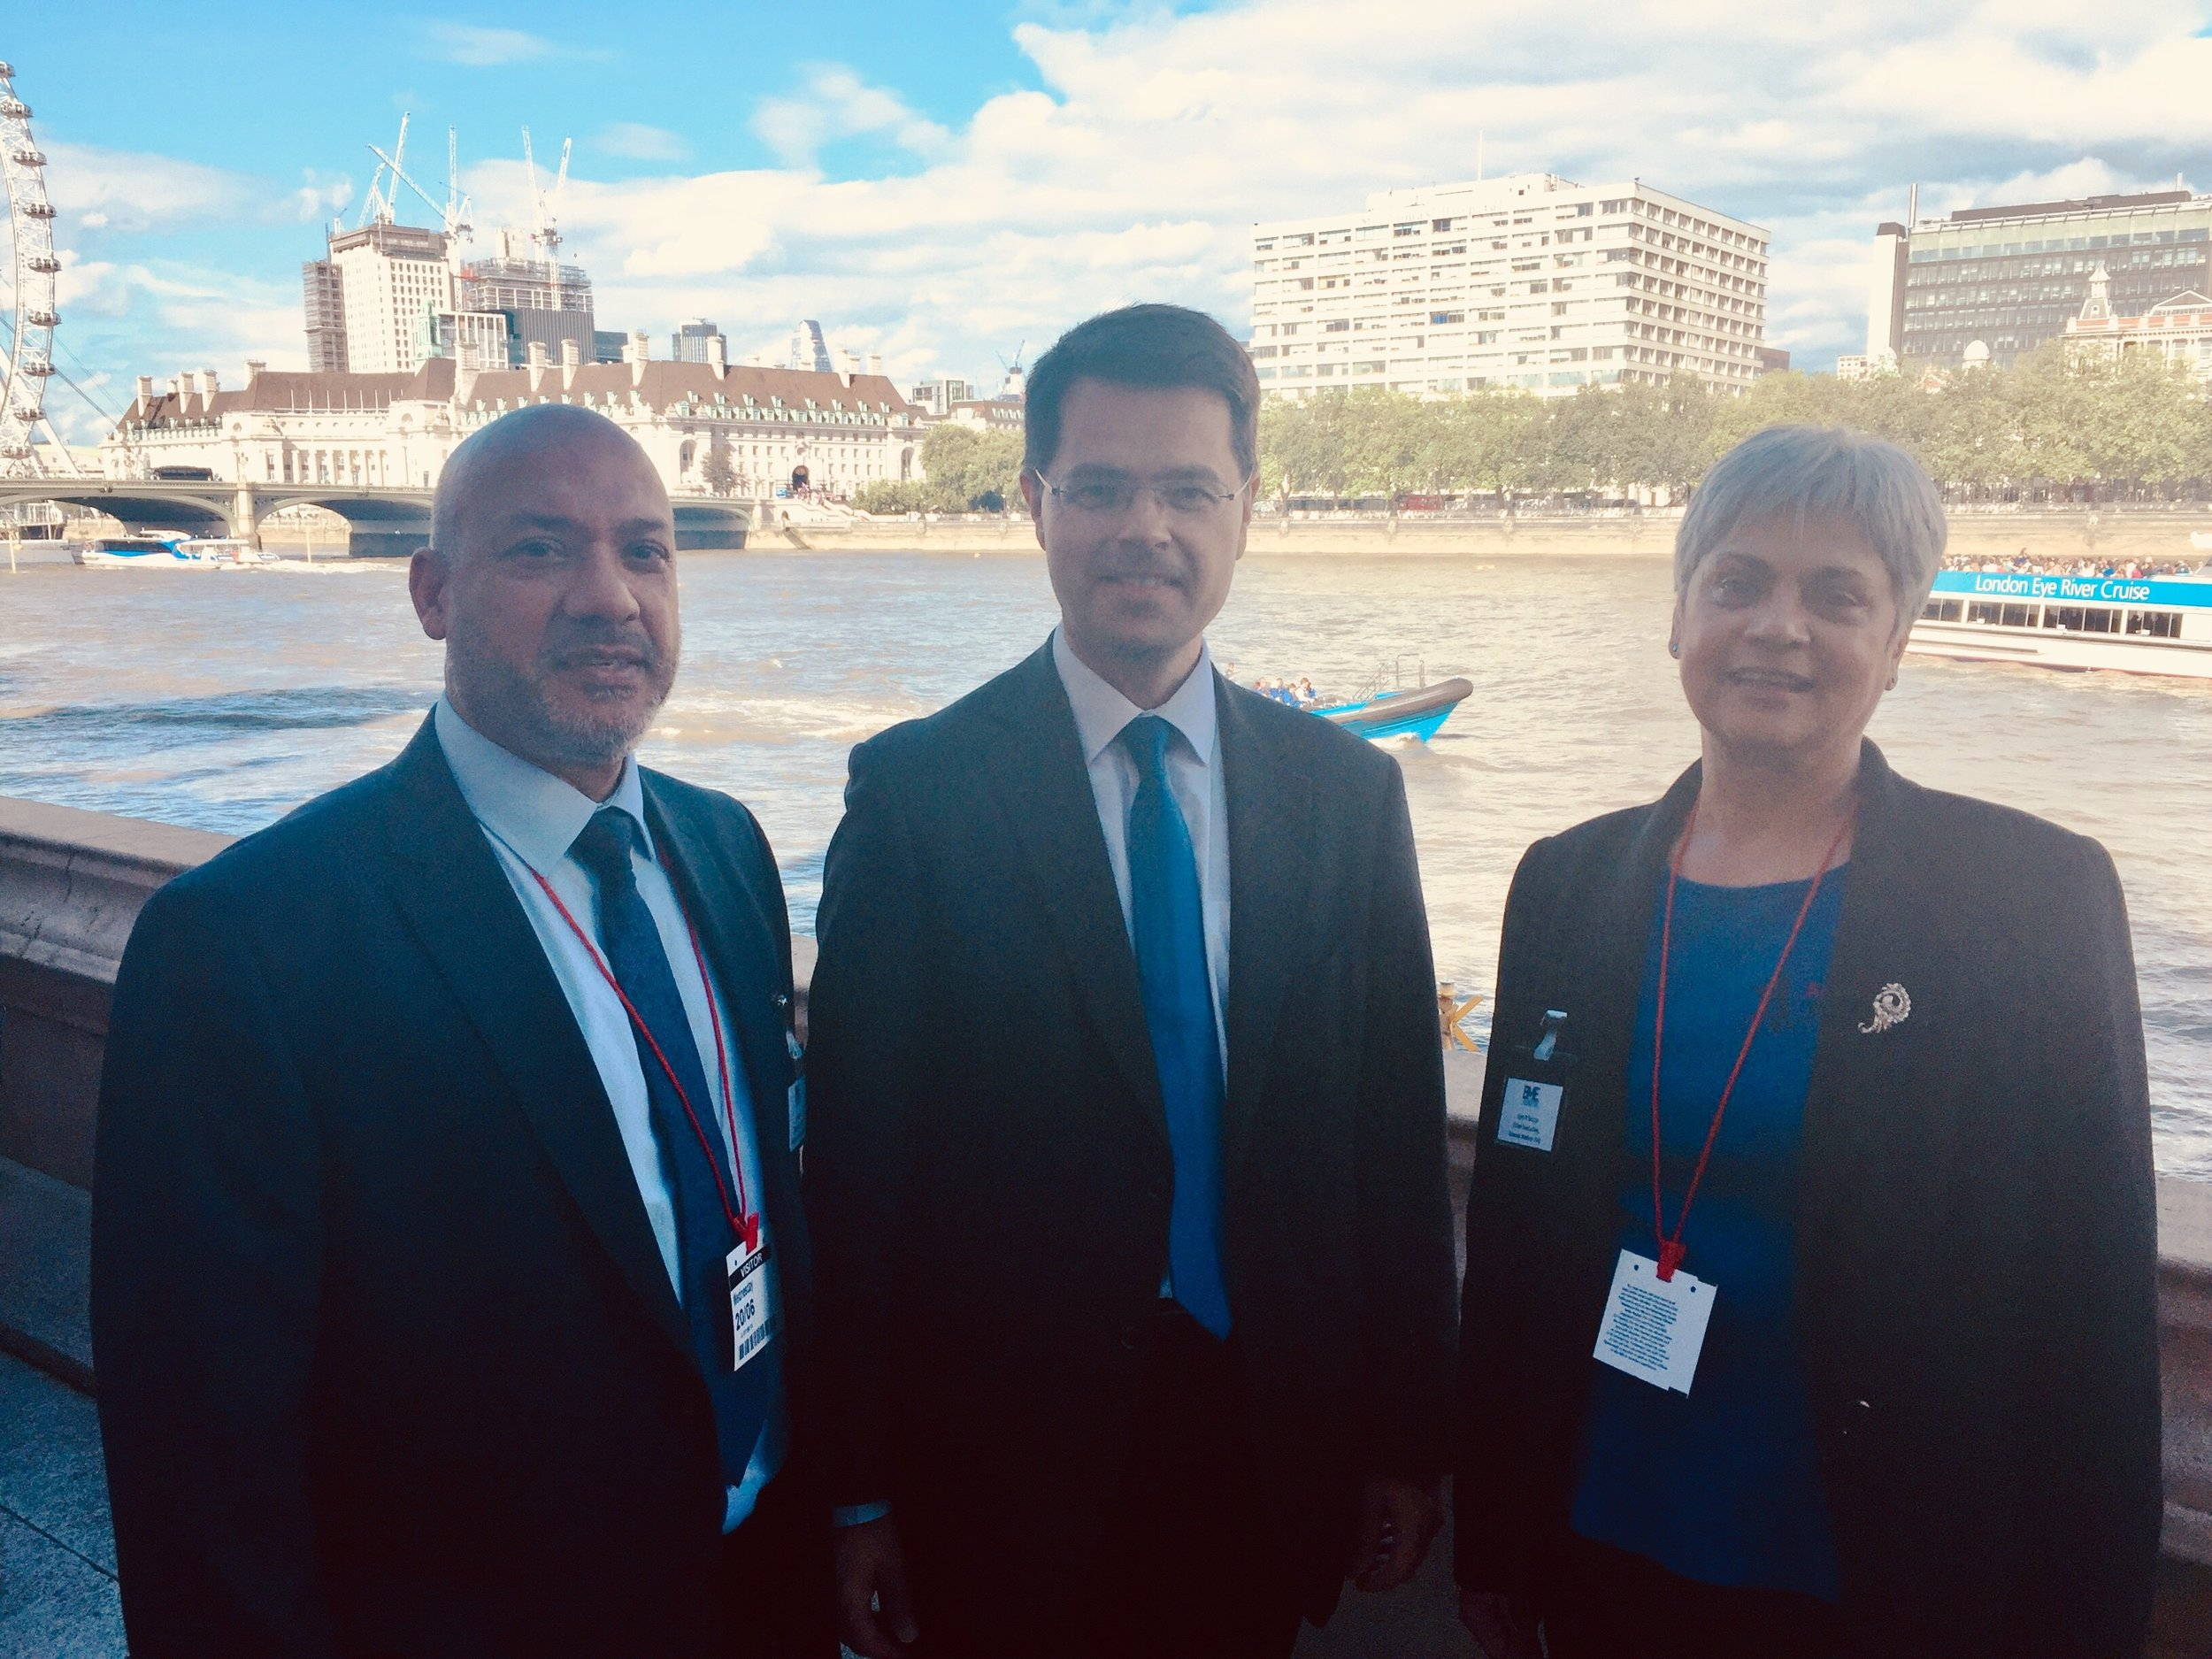 Housing Secretary James Brokenshire with Ali Akbor and Cym D'Souza from BME National